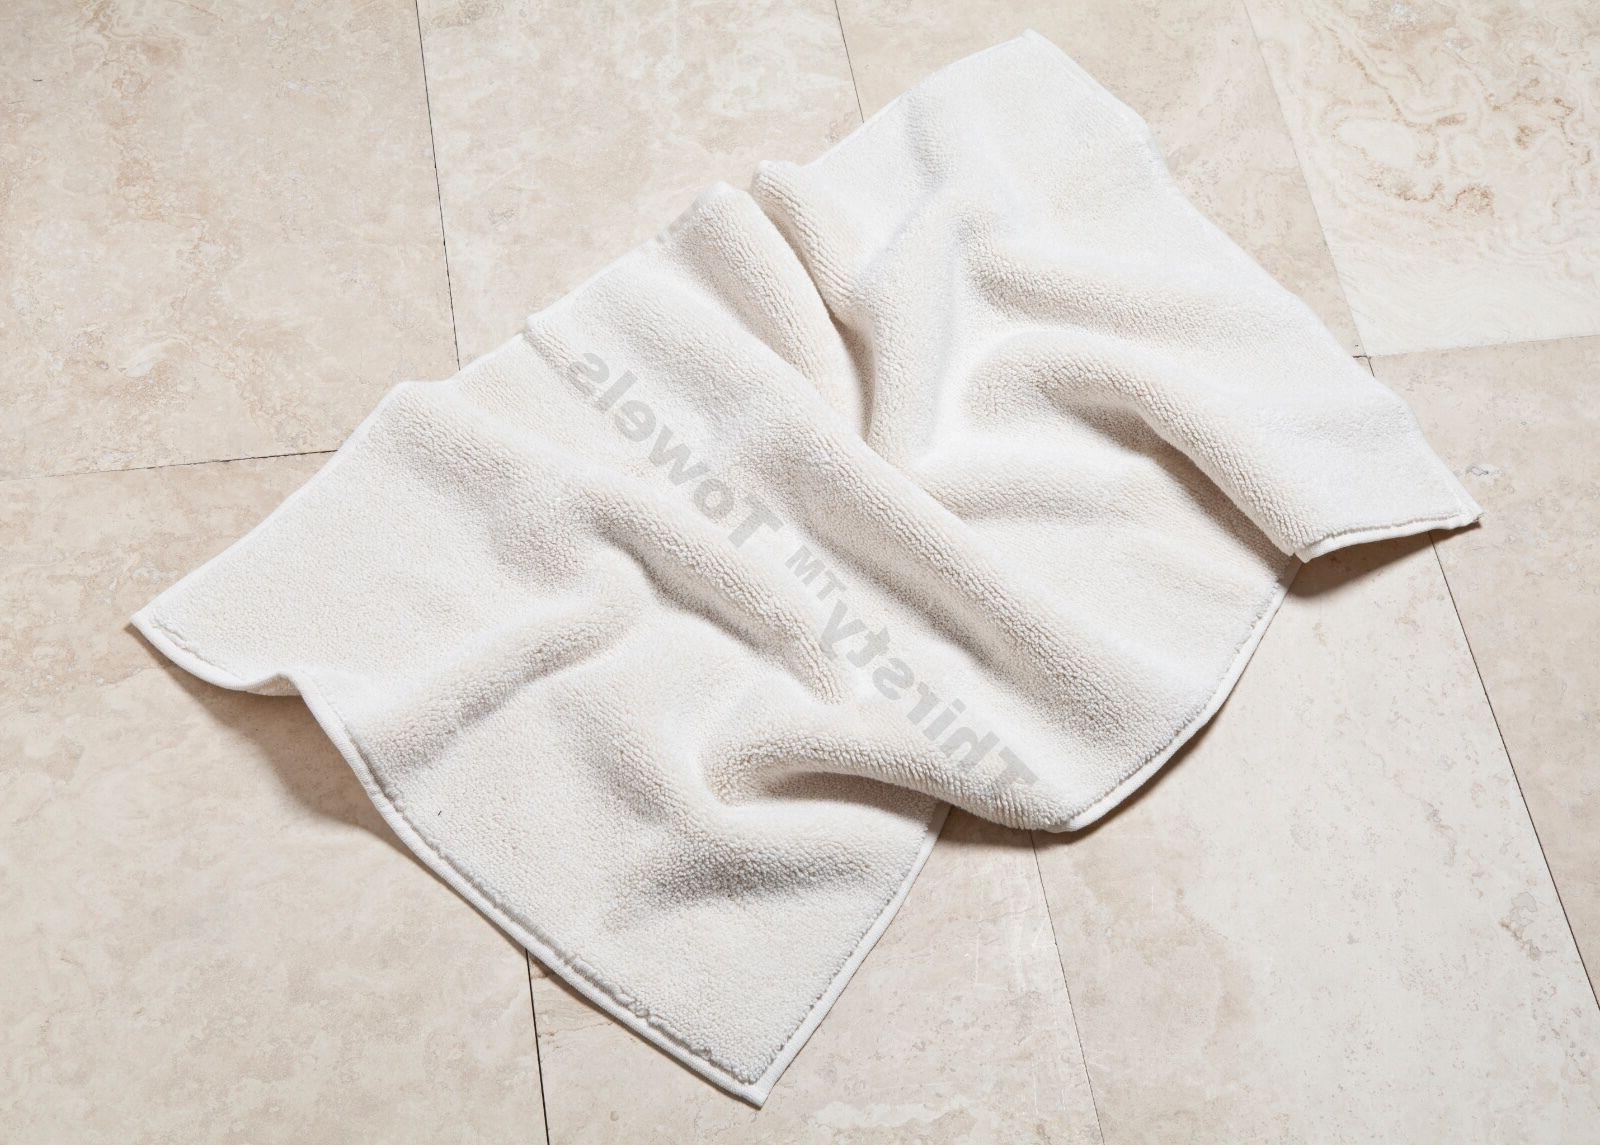 4-Pc Towel Set,Thirsty® Towels 700 Matching